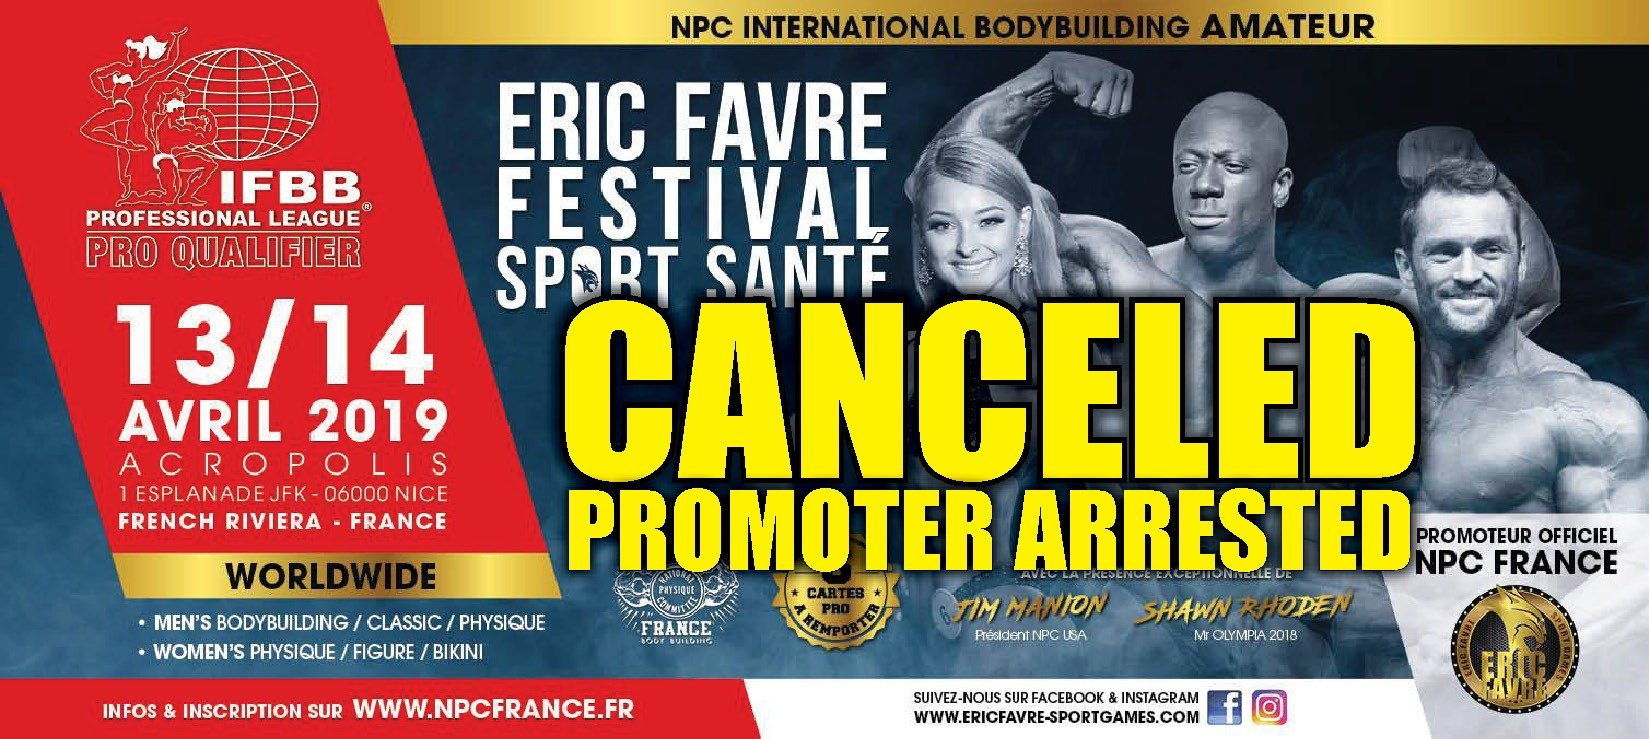 IFBB Pro Qualifier cancelled